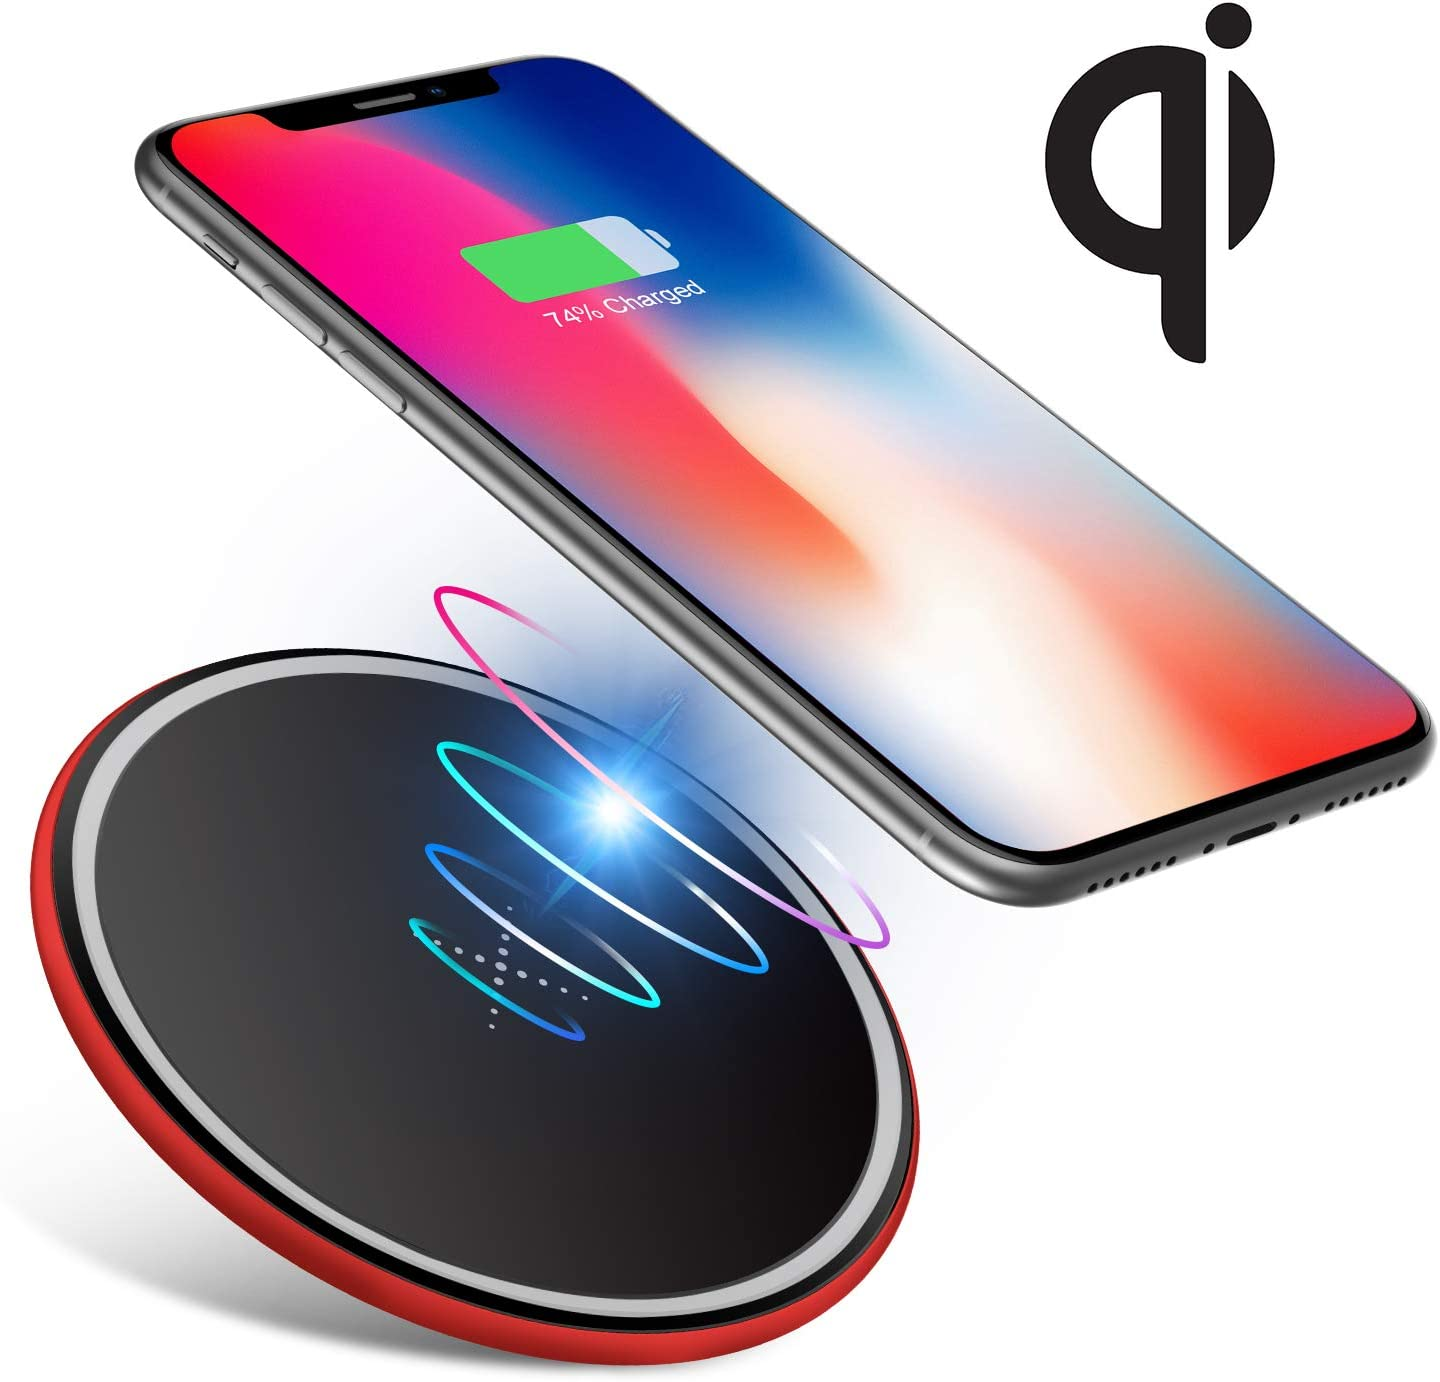 S8 Wireless Charging Pad for iPhone X//iPhone 8//8 Plus Ultra Slim Thin Qi Charger for Samsung Galaxy S9 Adapter Not Included - Red Wireless Charger S7/& All Qi-Enabled Devices